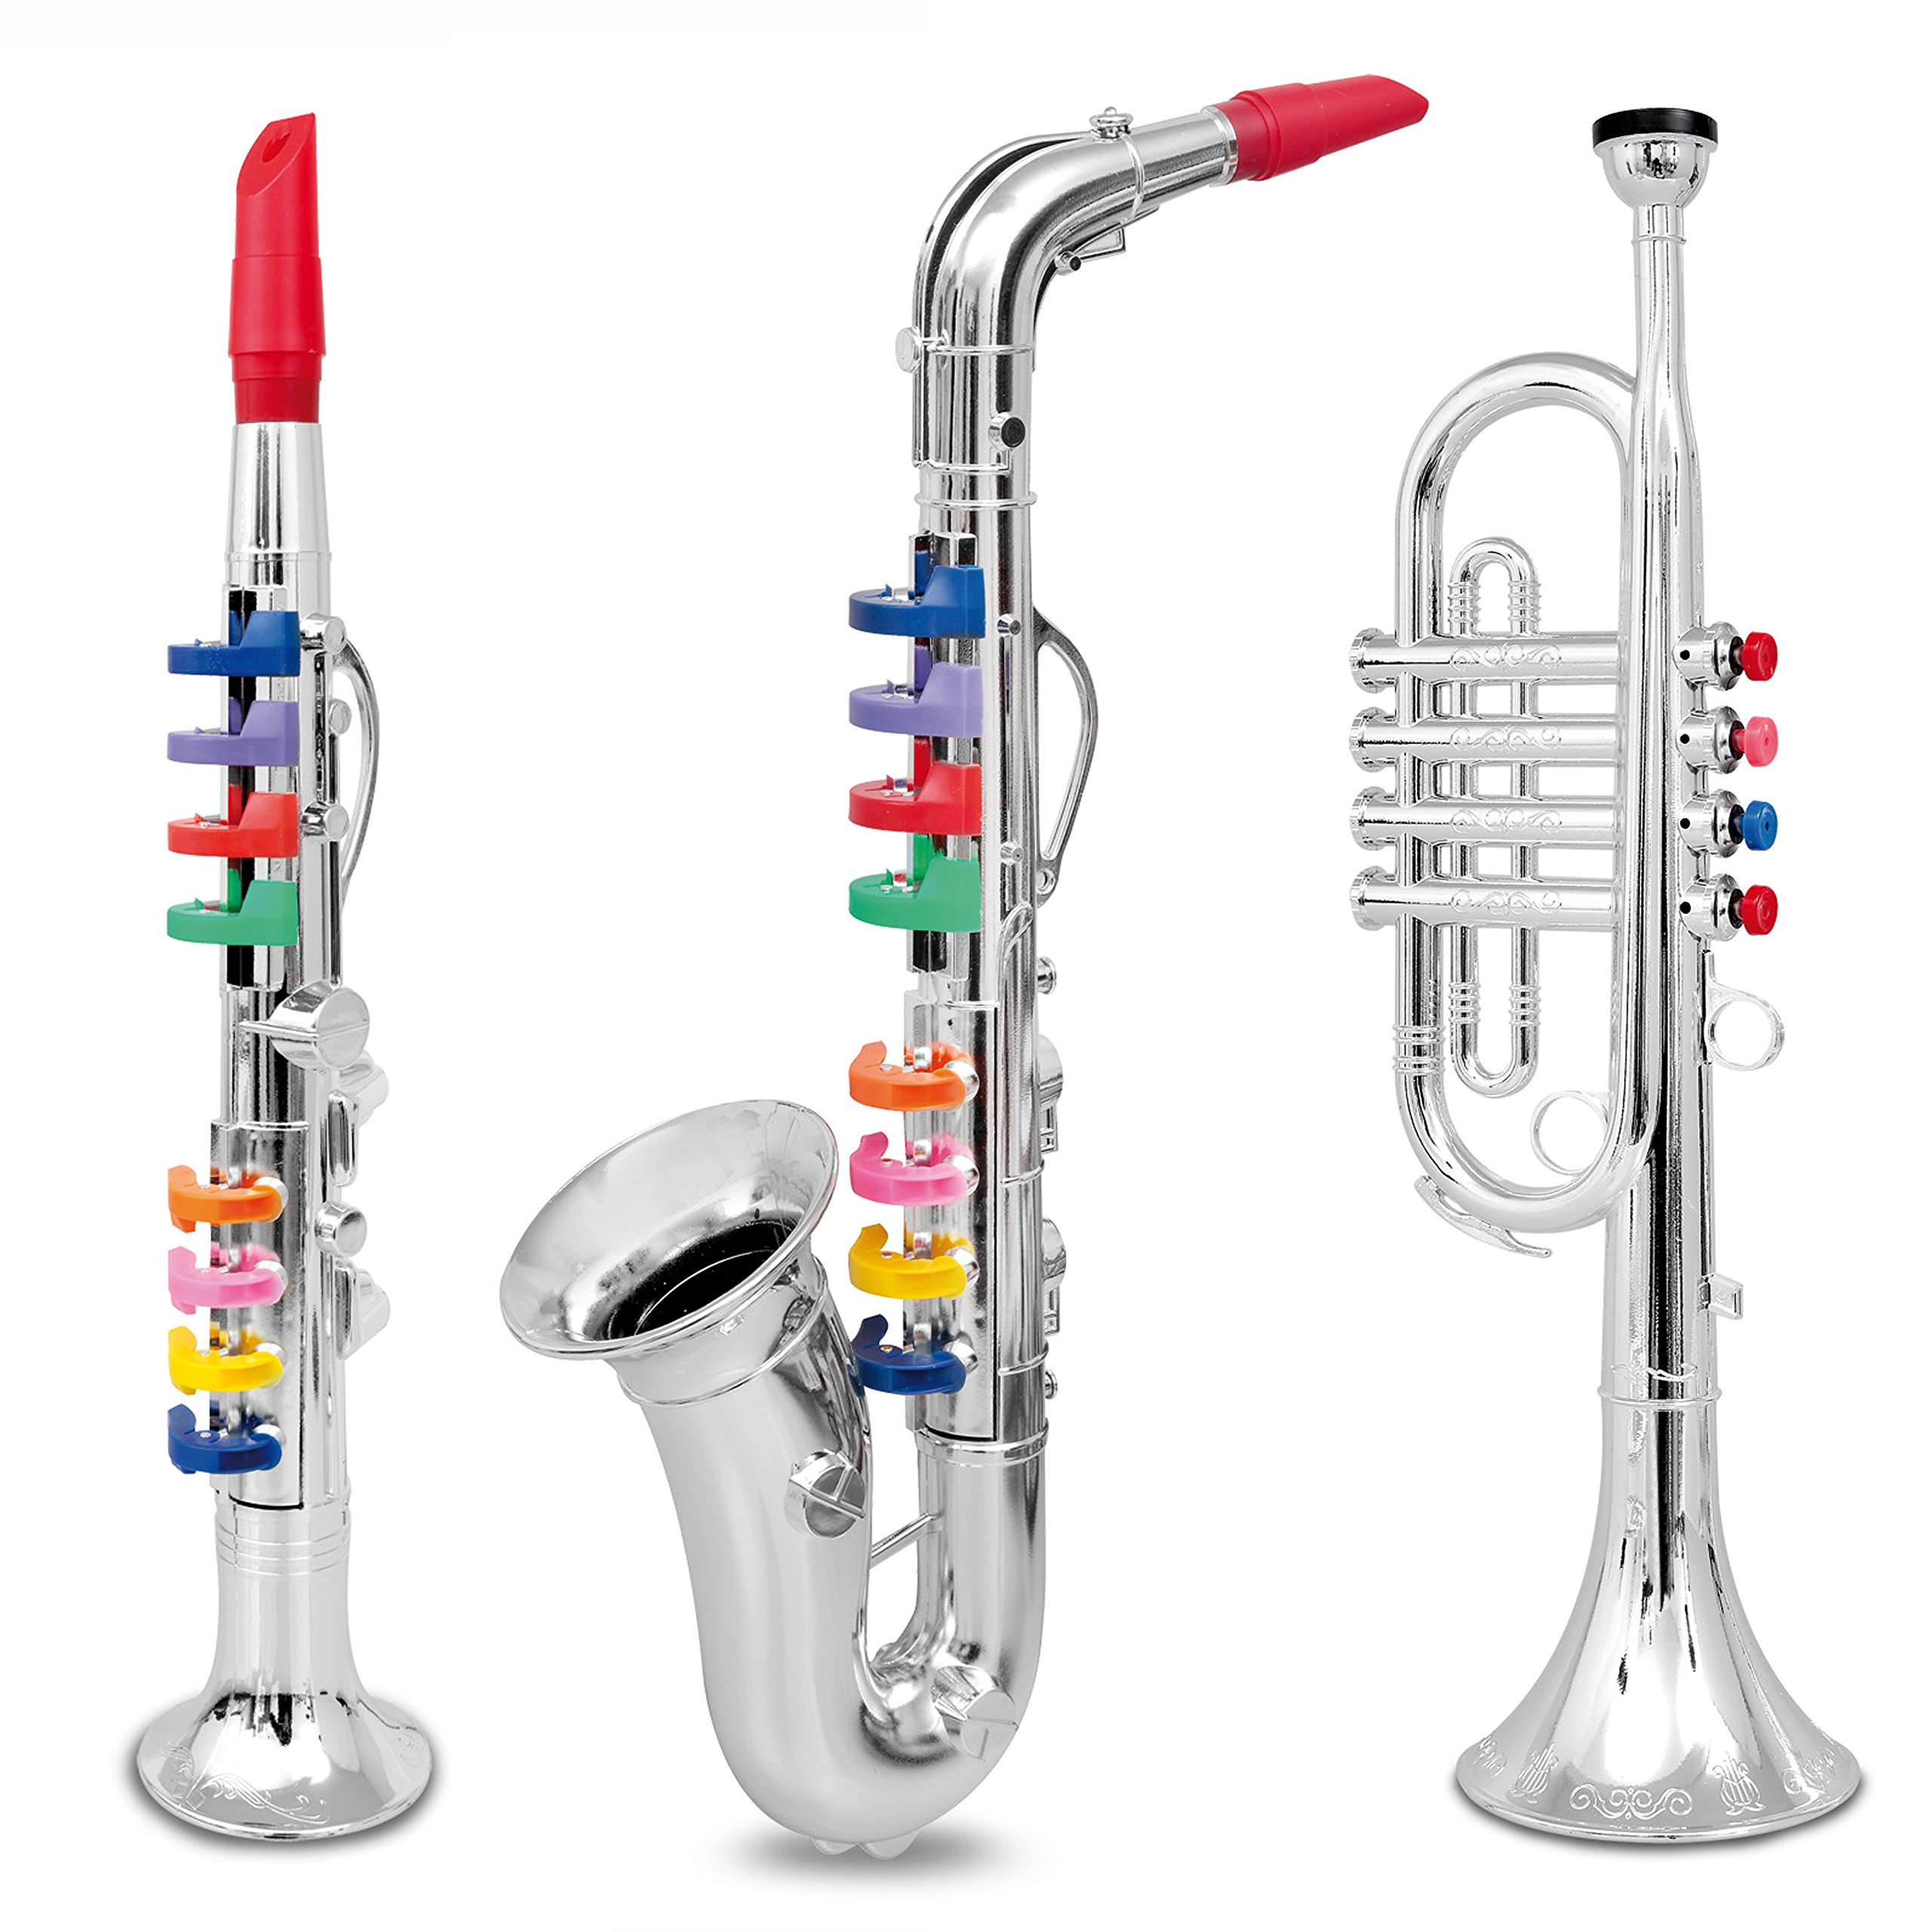 Set of 3 Music 1. Clarinet 2. Saxophone 3. Trumpet, Combo with over 10 Color Coded Teaching Songs Made in Italy. by First Note USA